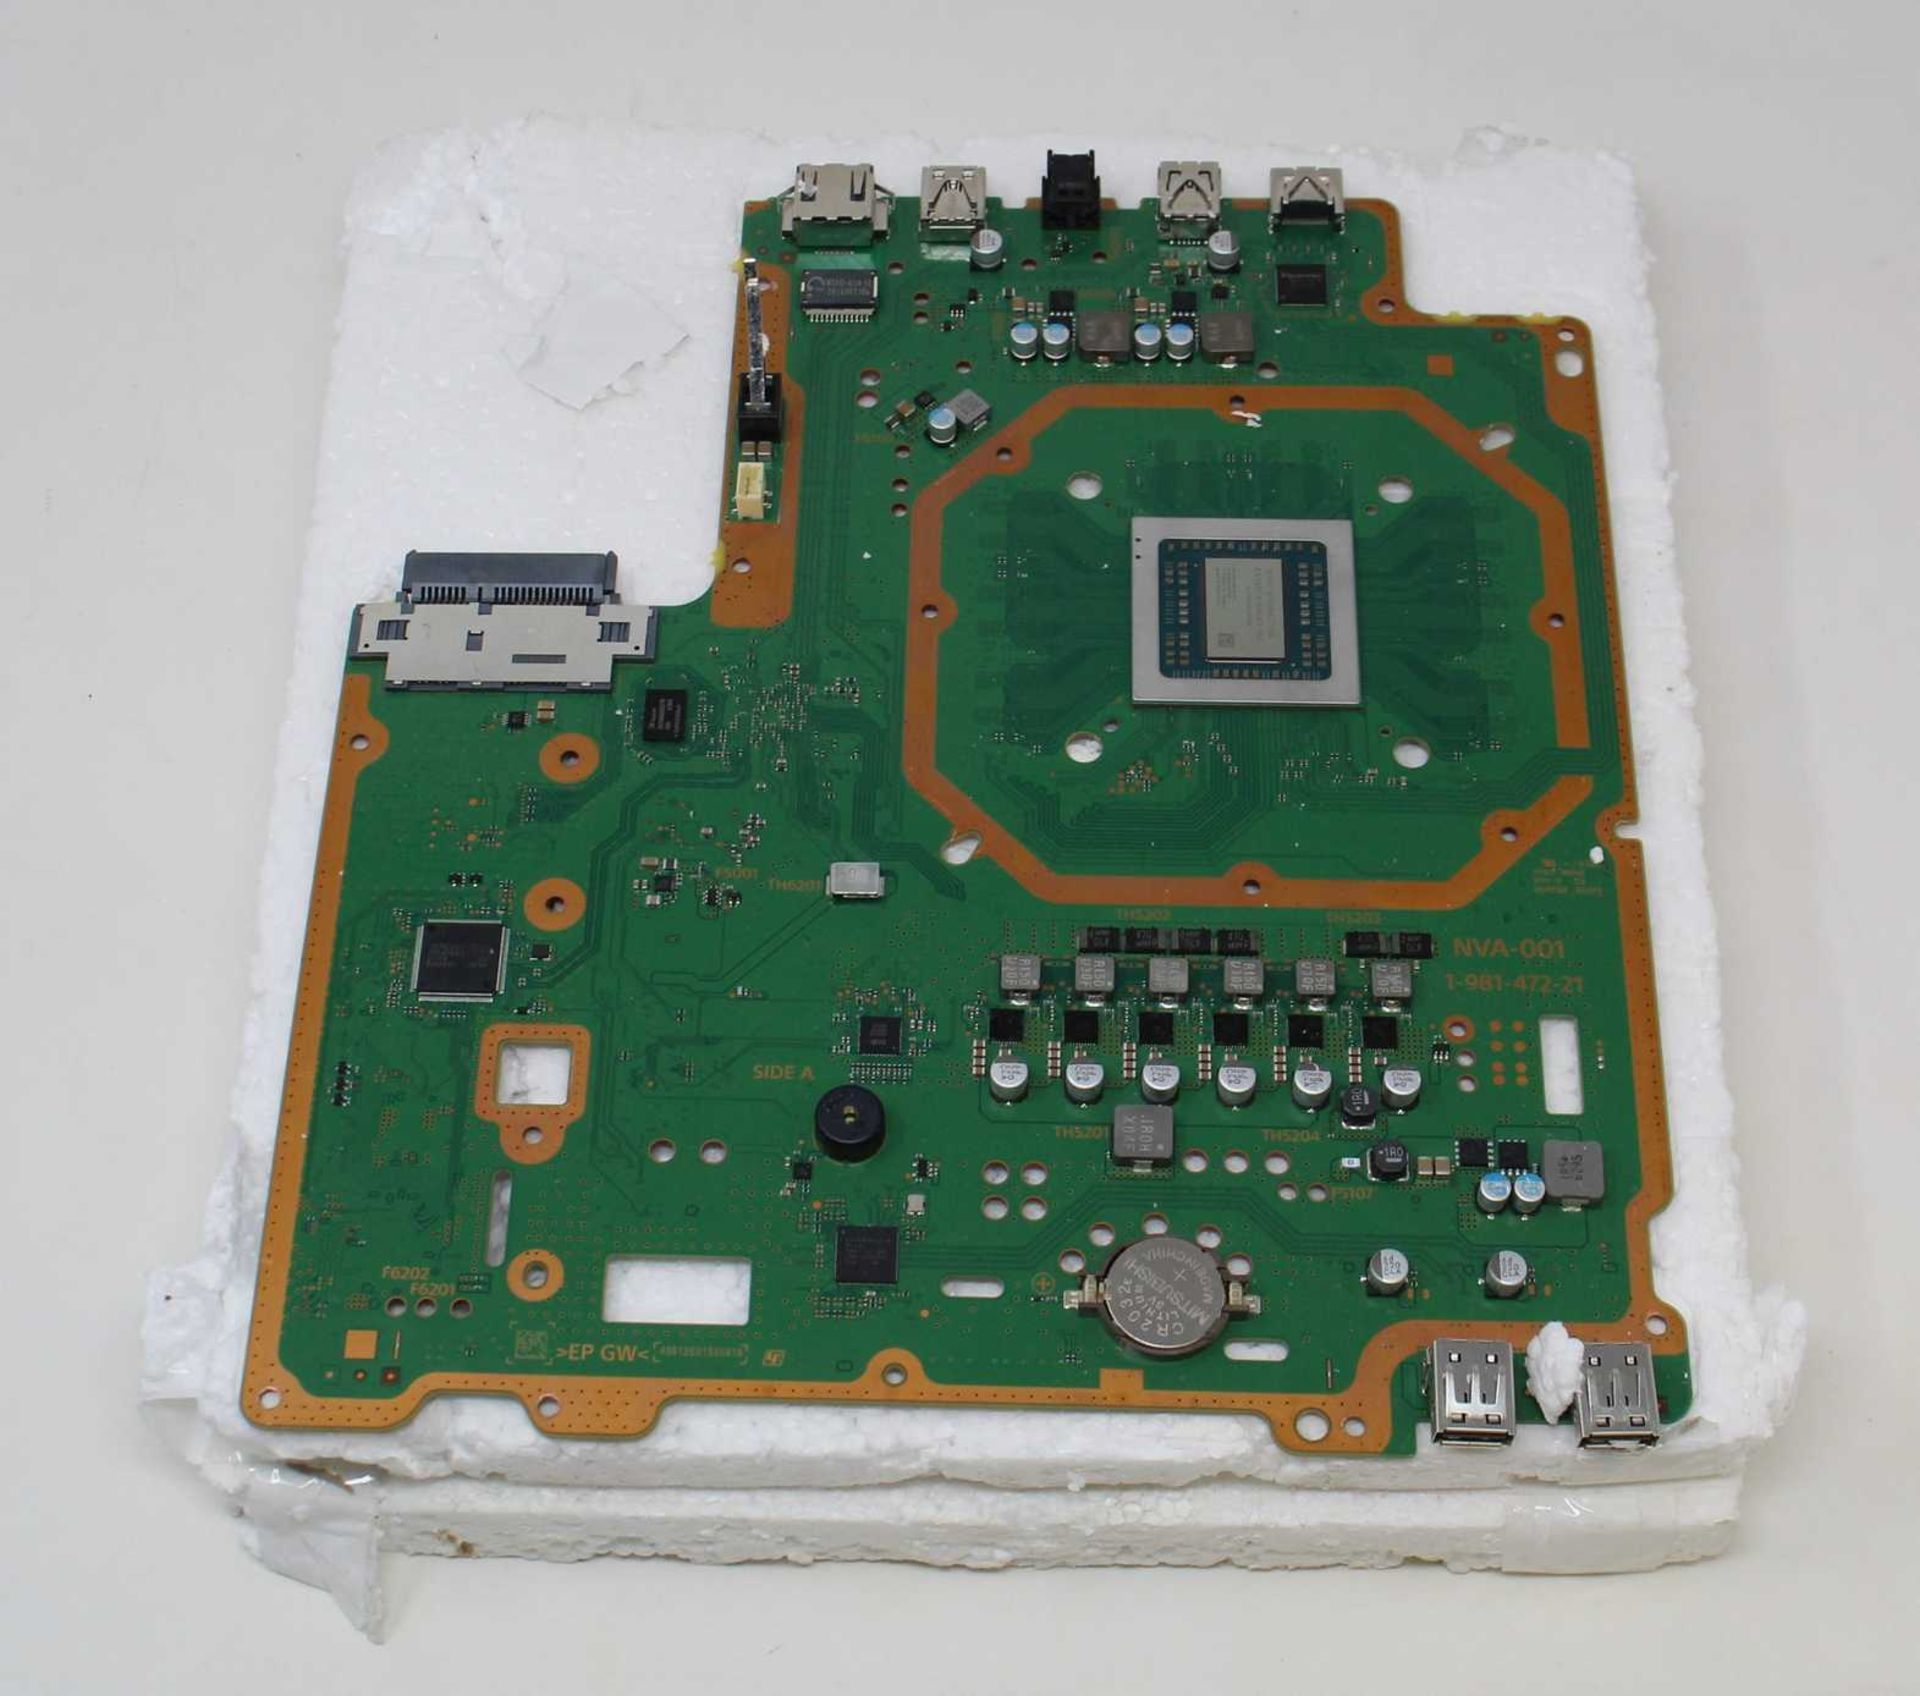 SOLD FOR PARTS: A pre-owned Sony PlayStation Pro Motherboard NVA-001 1-981-472-21 (Untested,sold